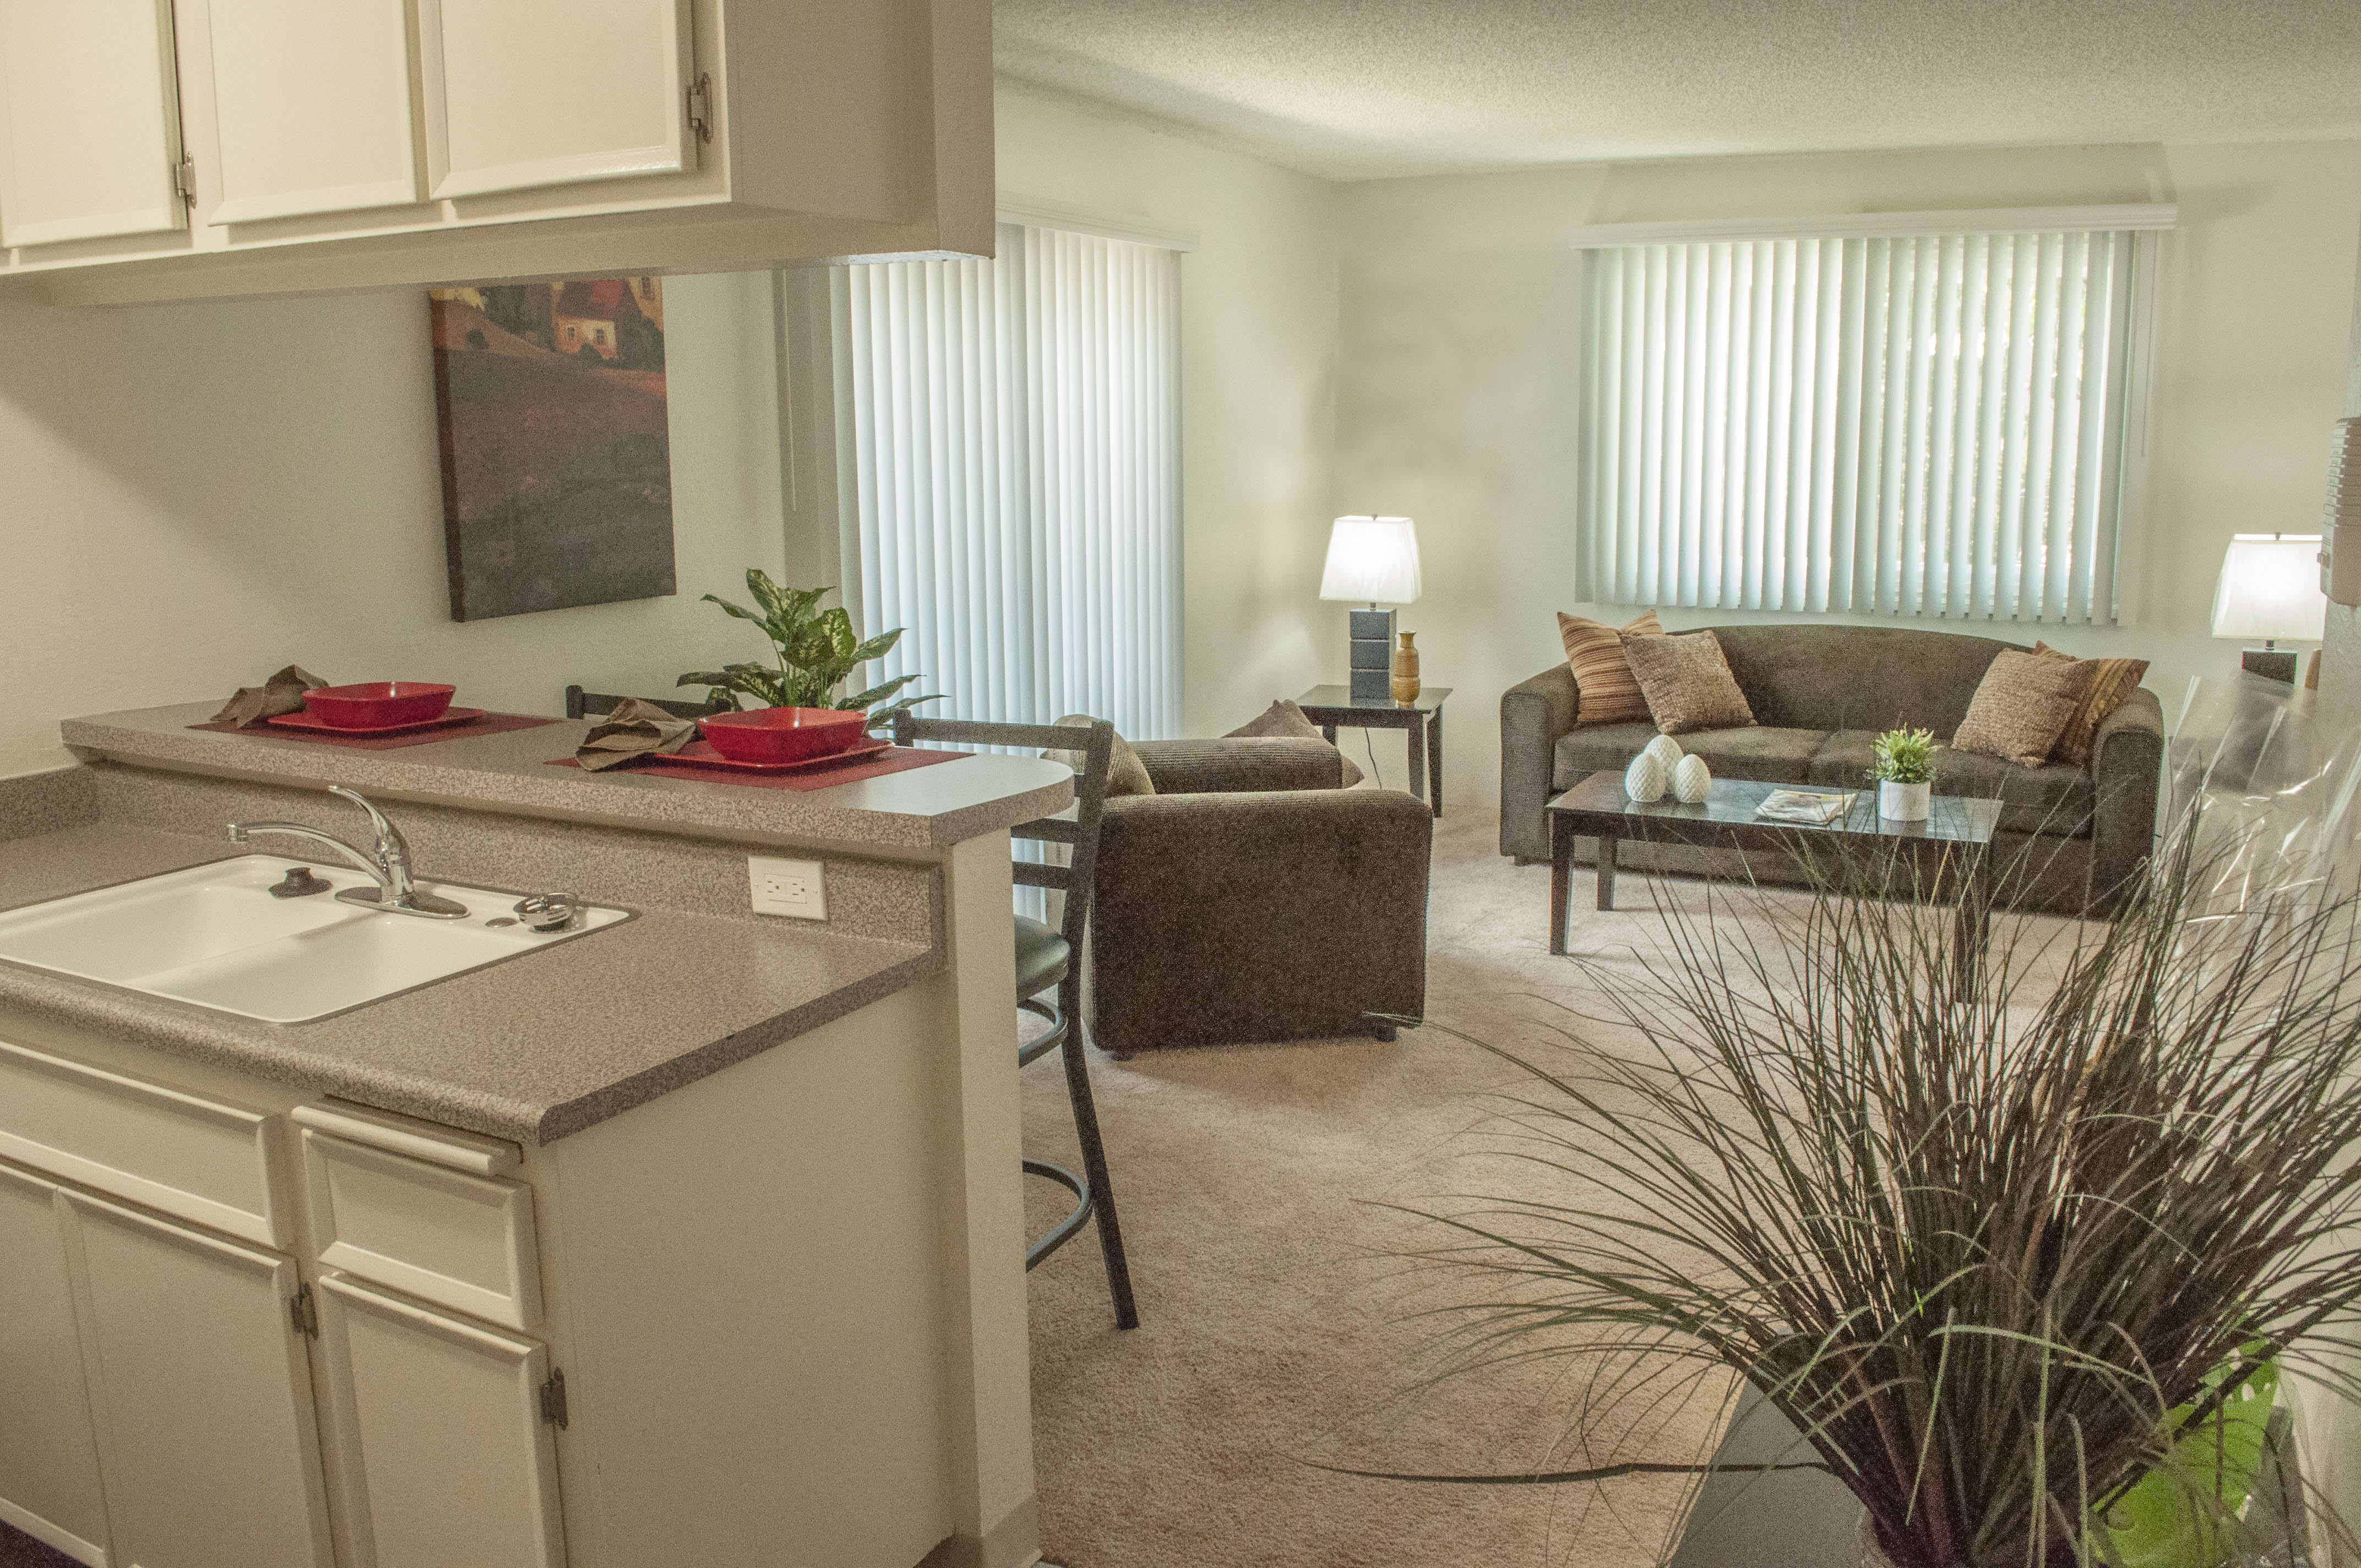 Furnished Studios And 1 Bedroom Apartments In Northridge, CA